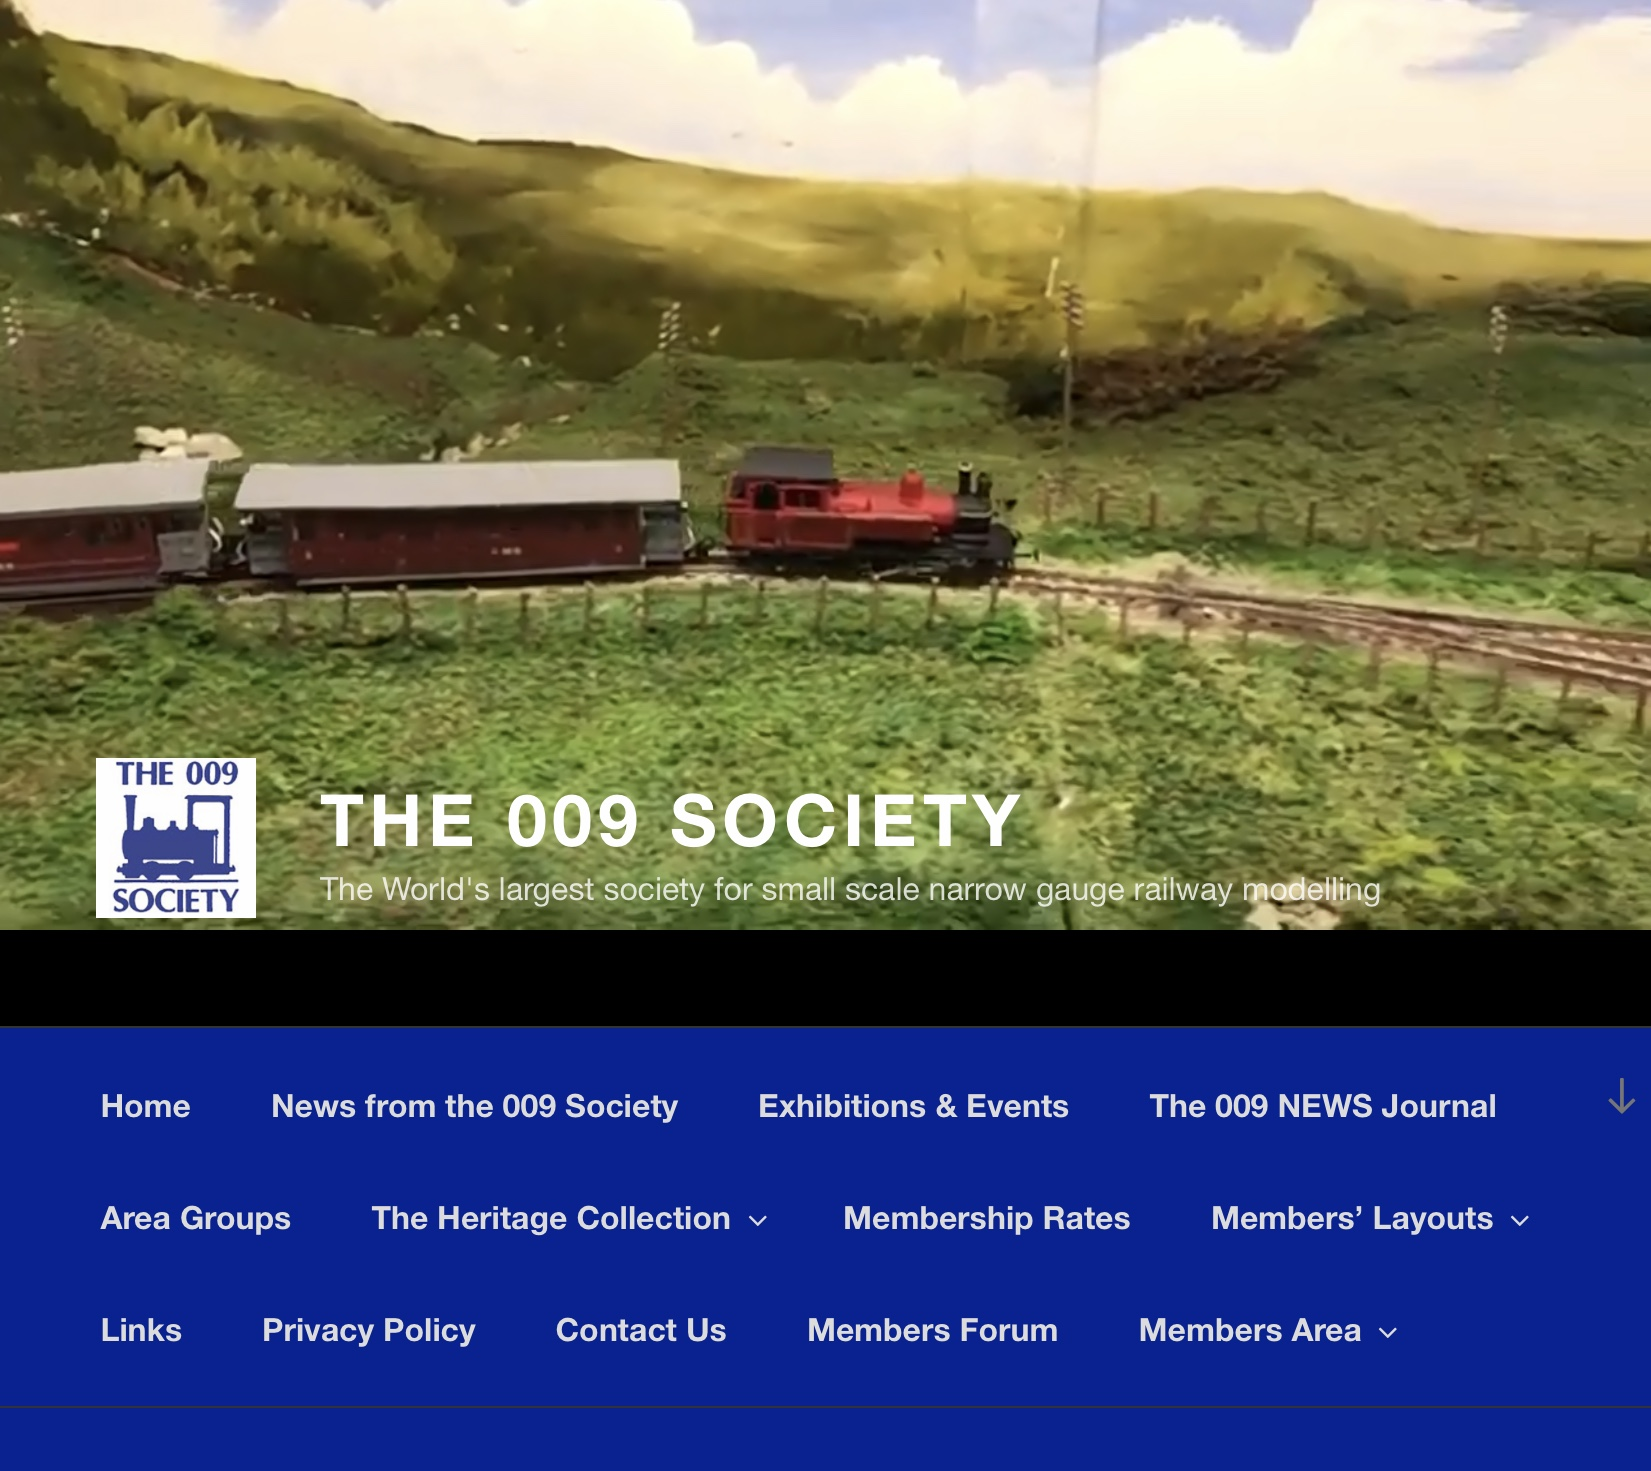 009 Society web site